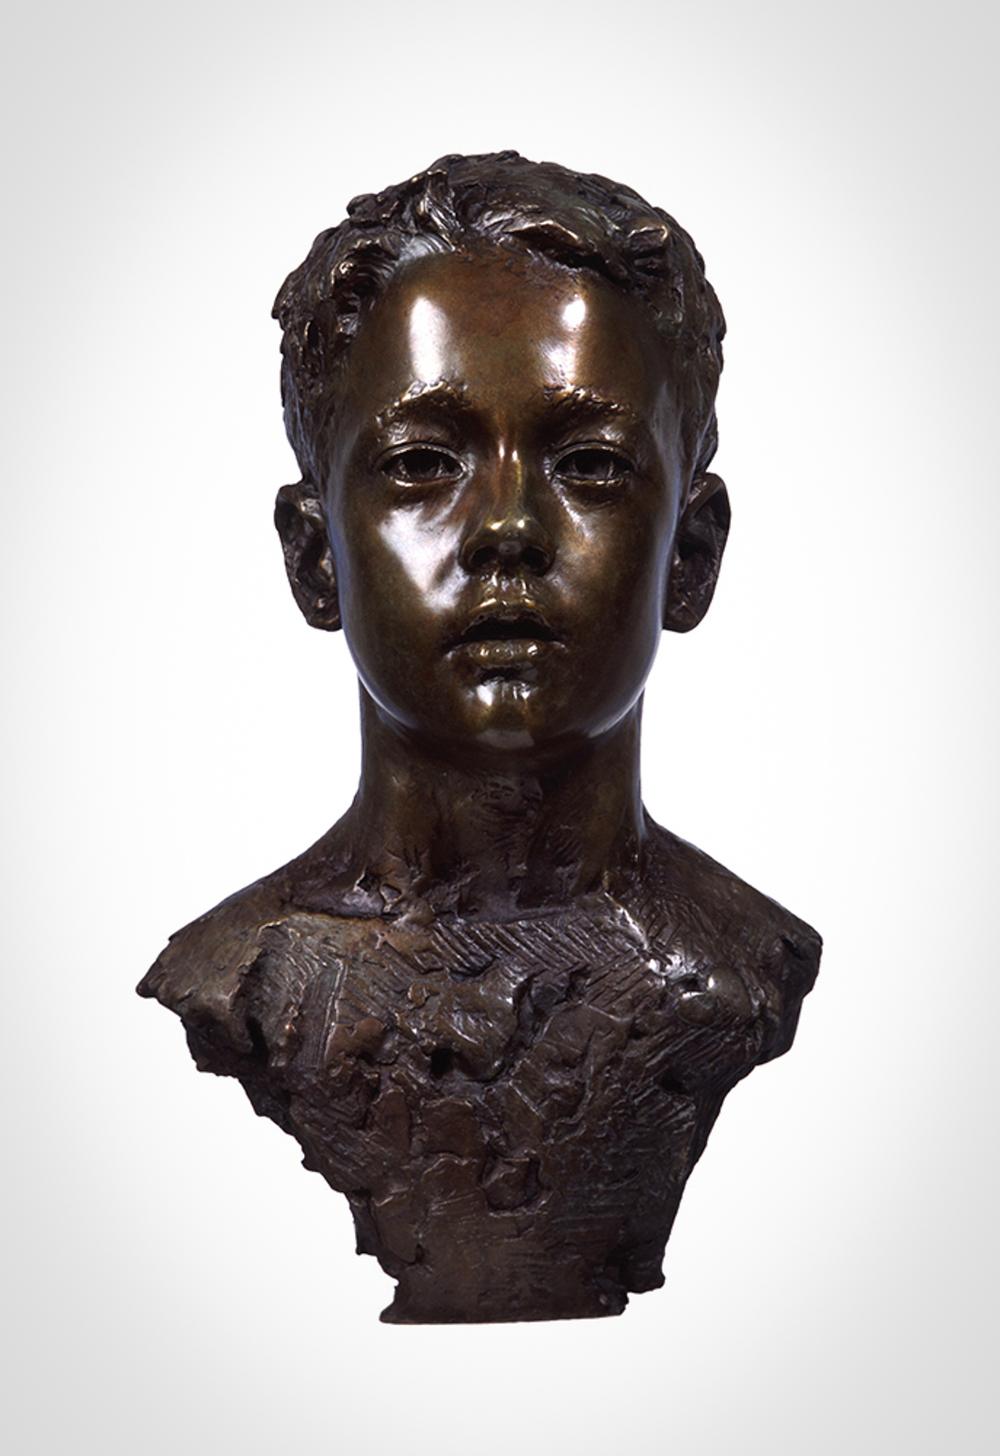 Portrait sculpture